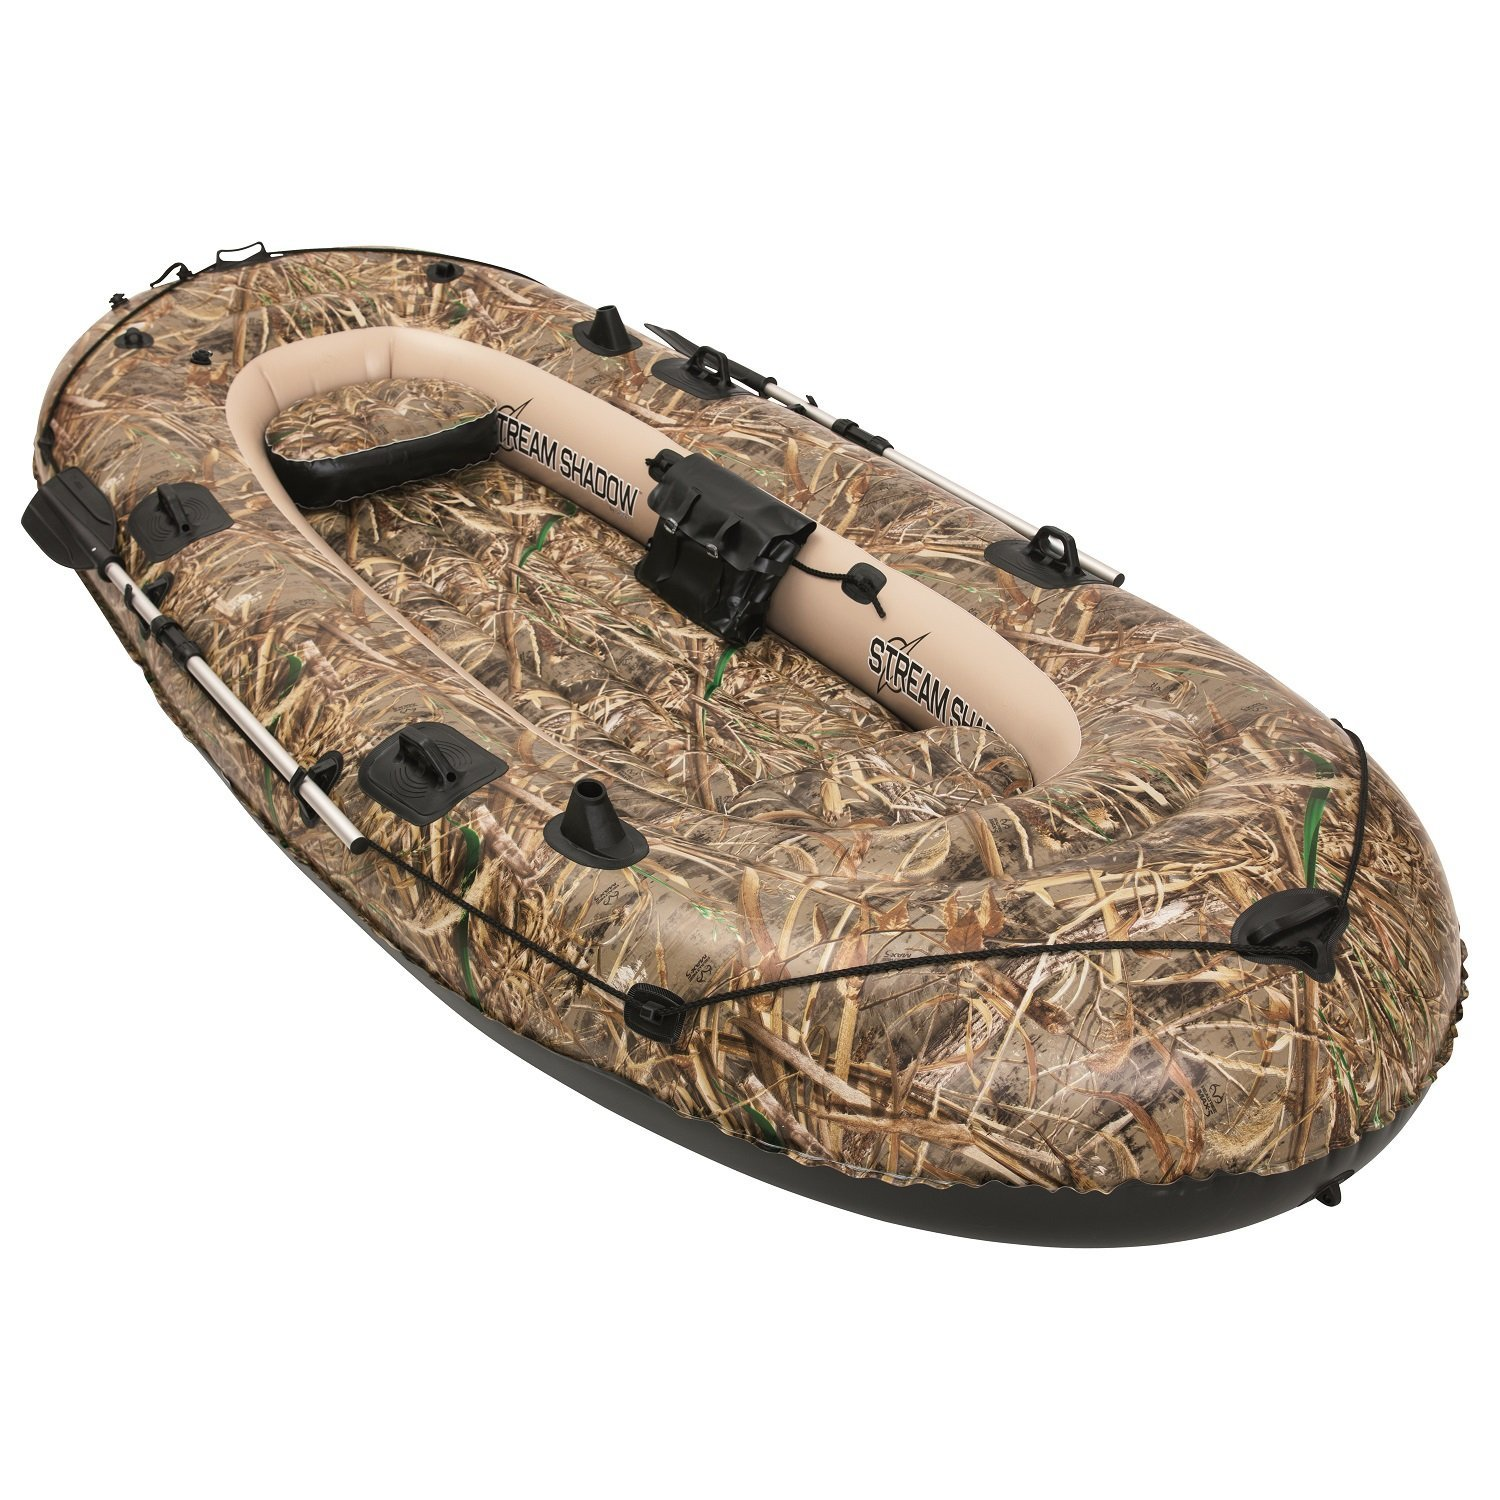 Bestway Hydro Force 137 x 56 Inches Stream Shadow Inflatable Boat/ Raft   92101E